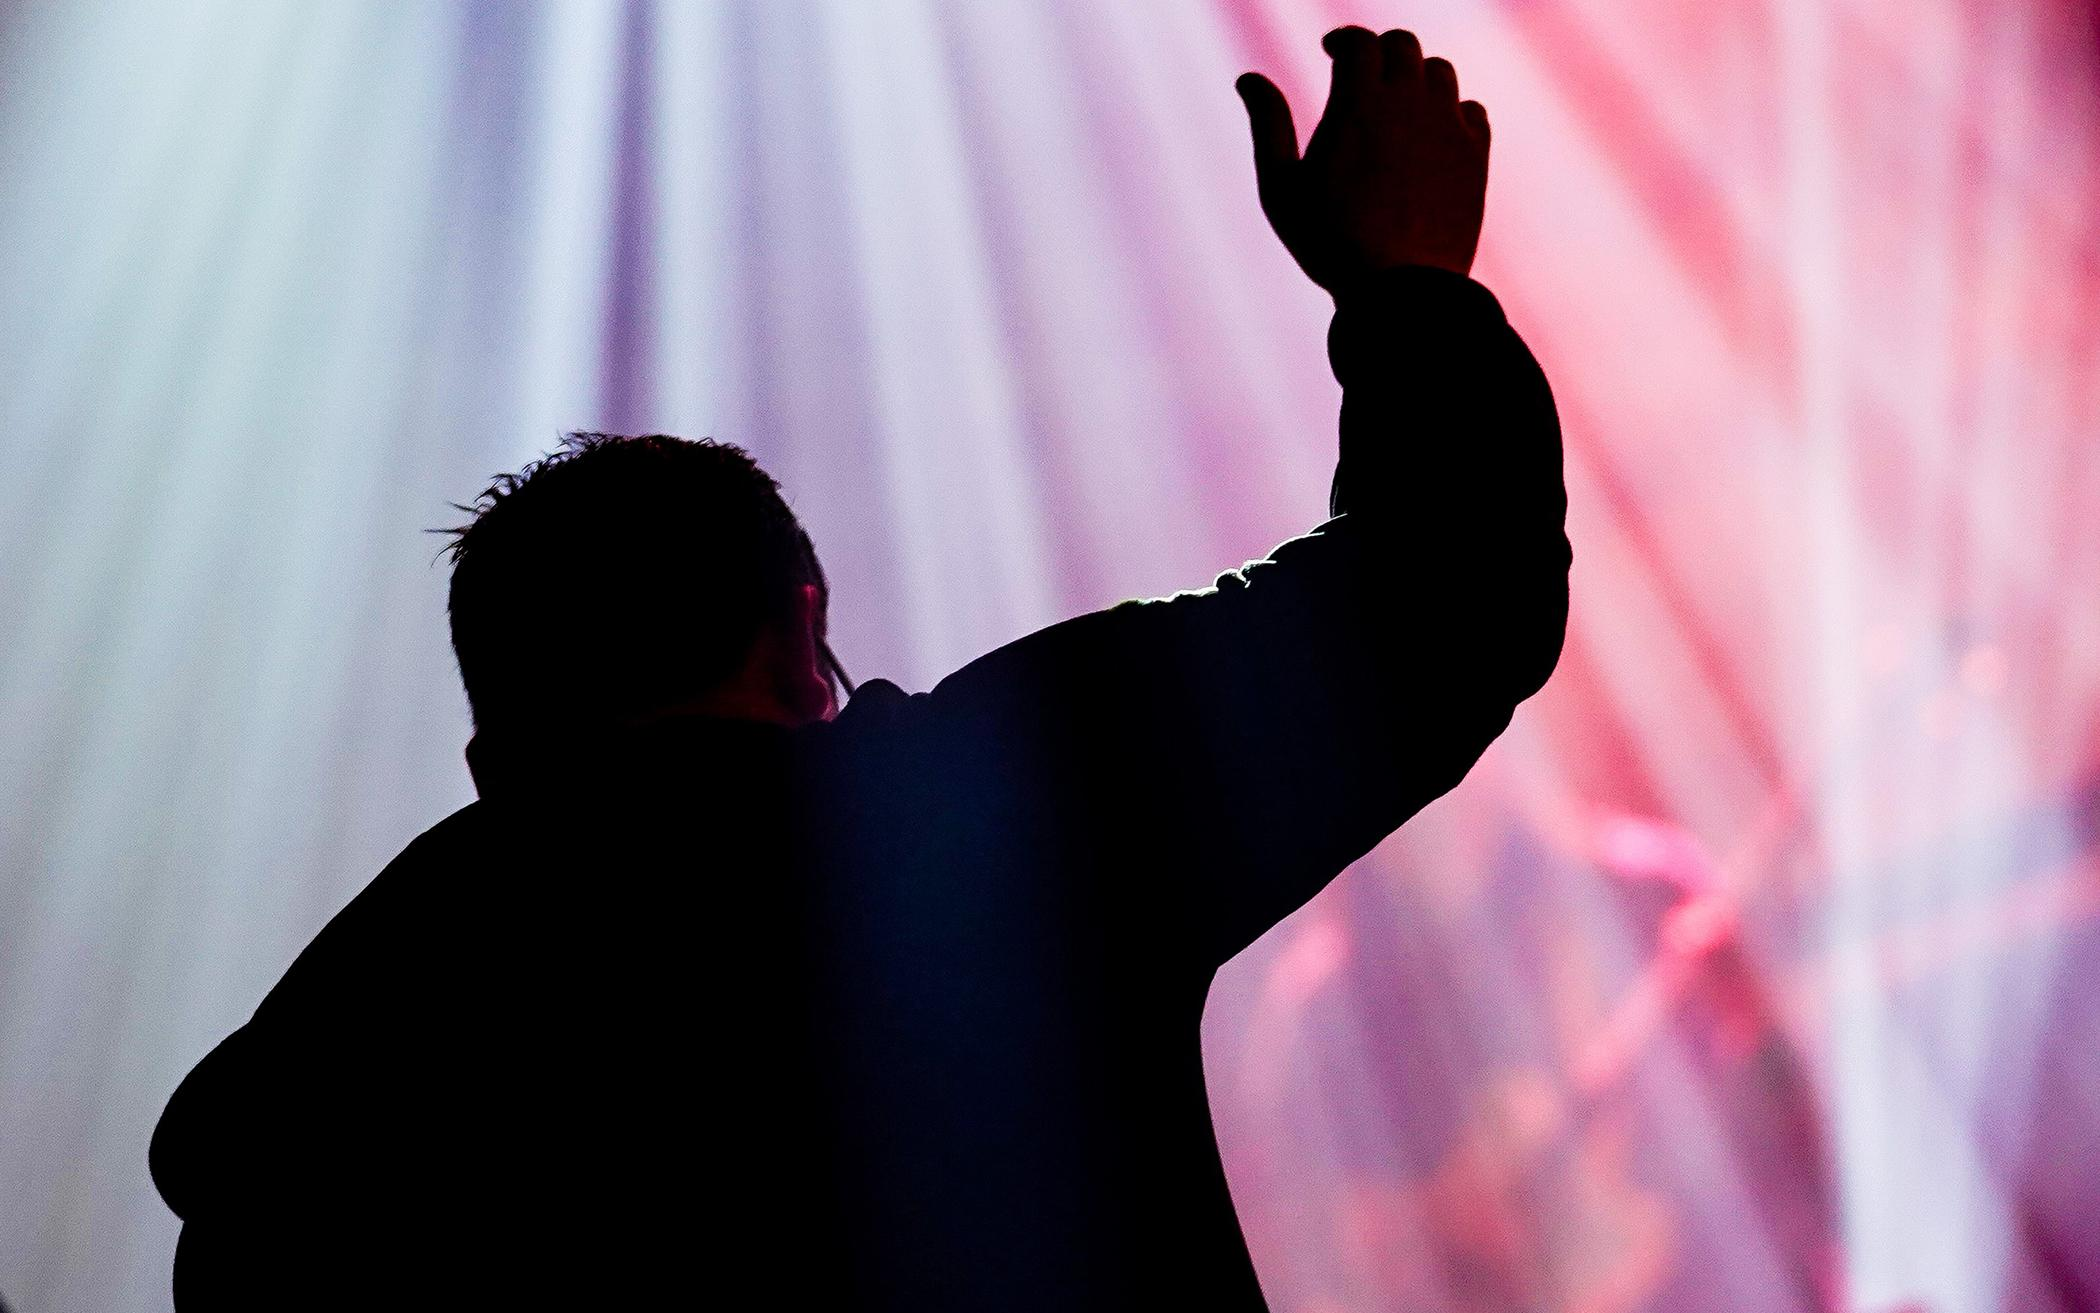 Finding Narcissism in Church